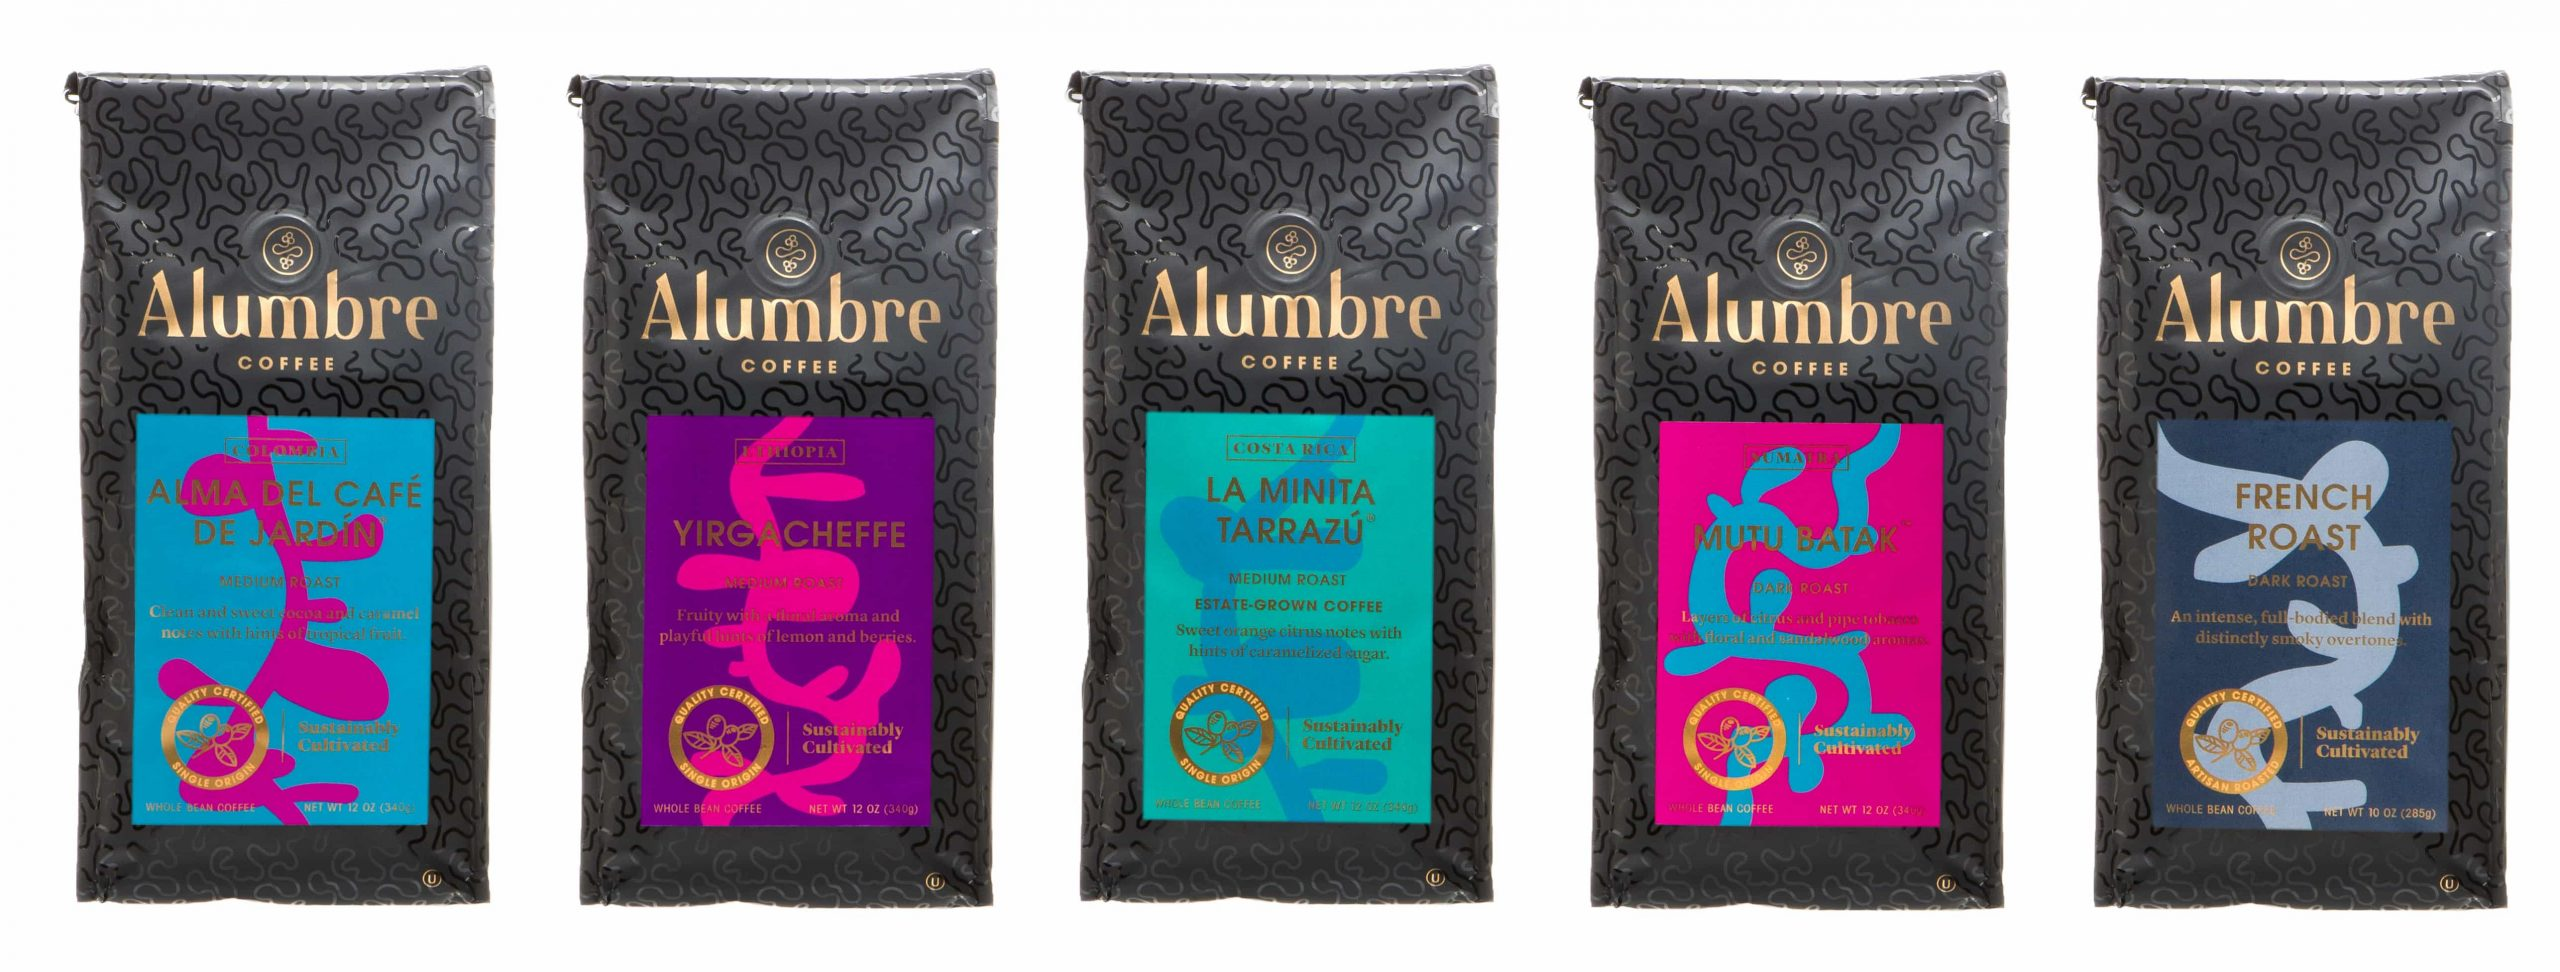 Coffee Connoisseurs Celebrate the Arrival of Alumbre Coffee